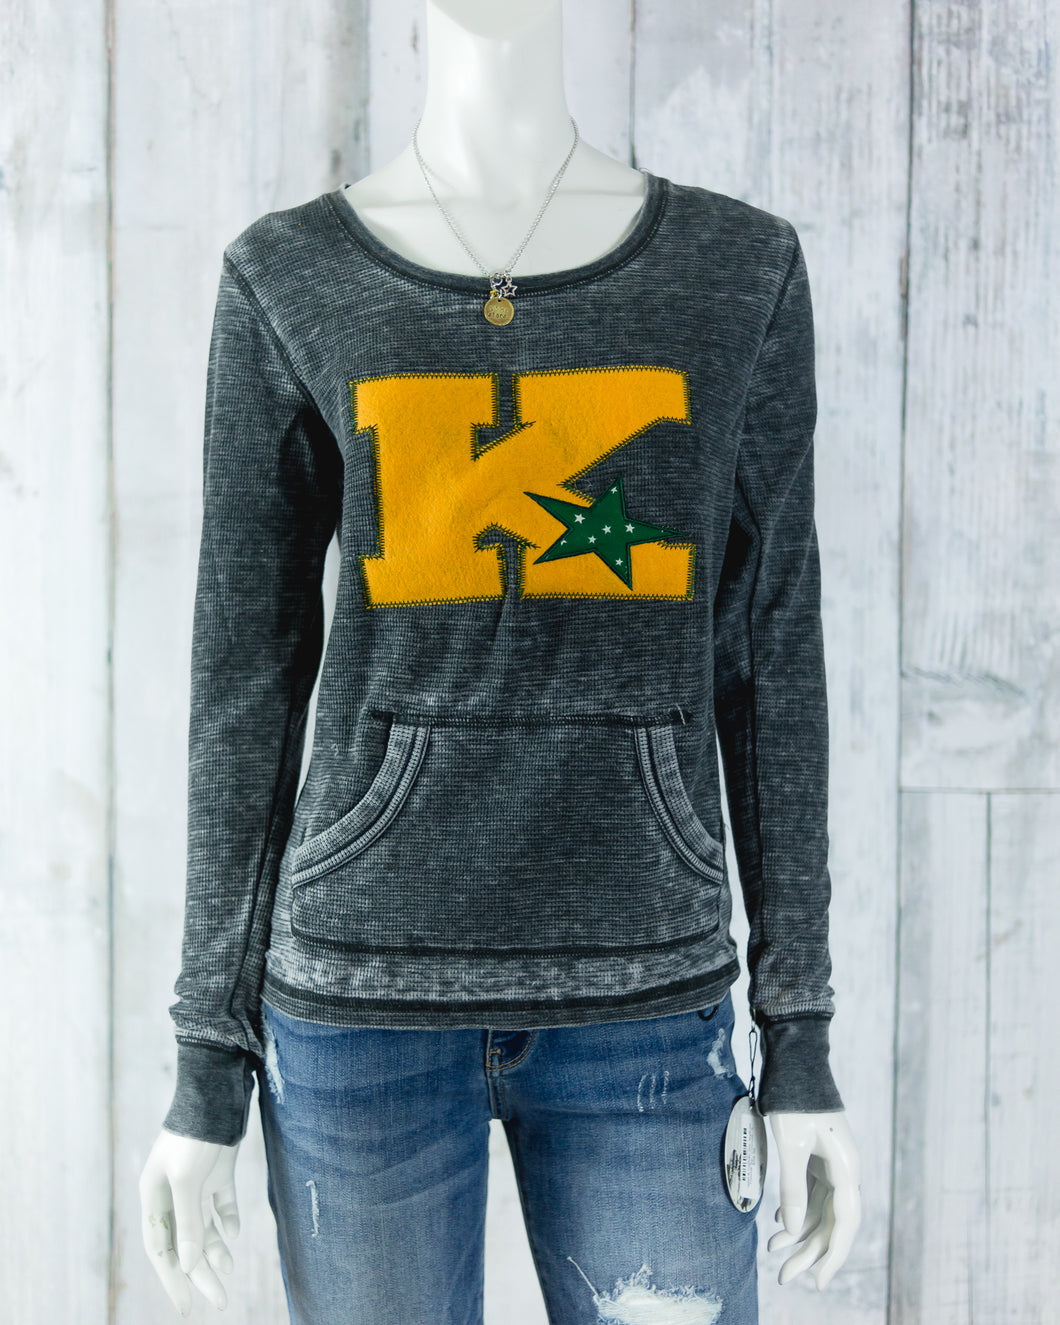 Kearney Catholic Star Appliqué Thermal Top